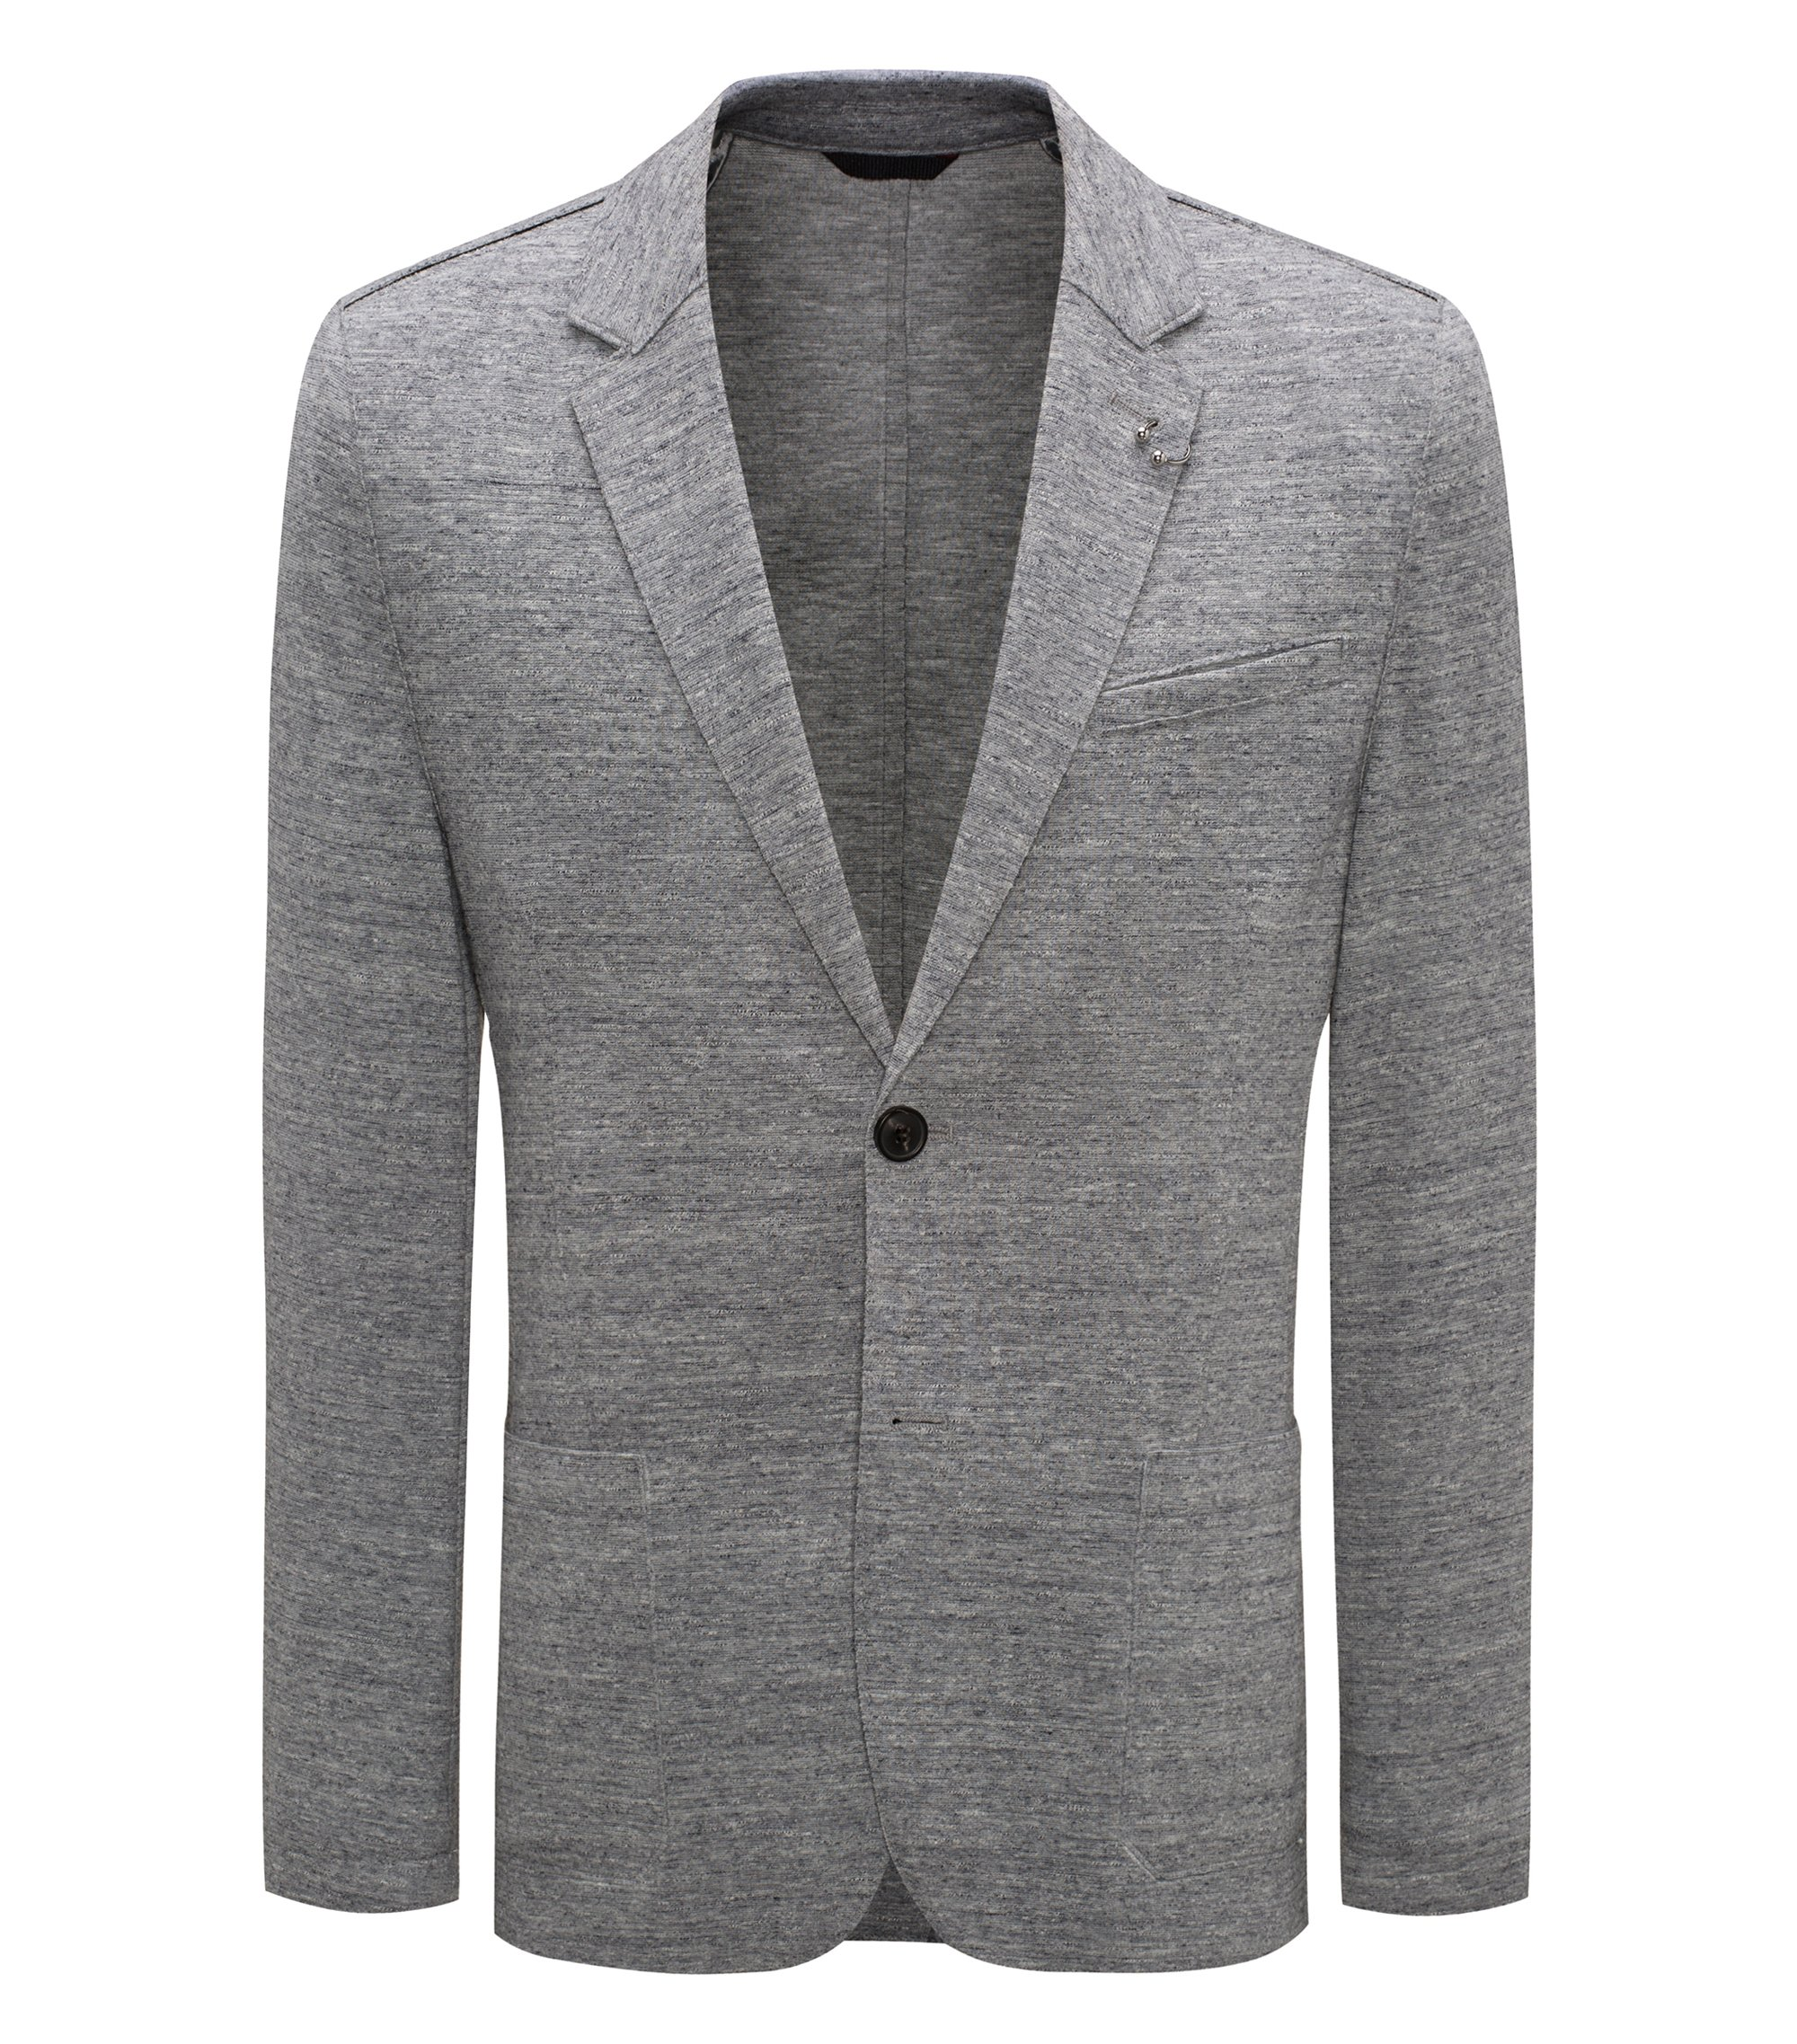 Extra-slim-fit jacket in mélange fabric, Grey